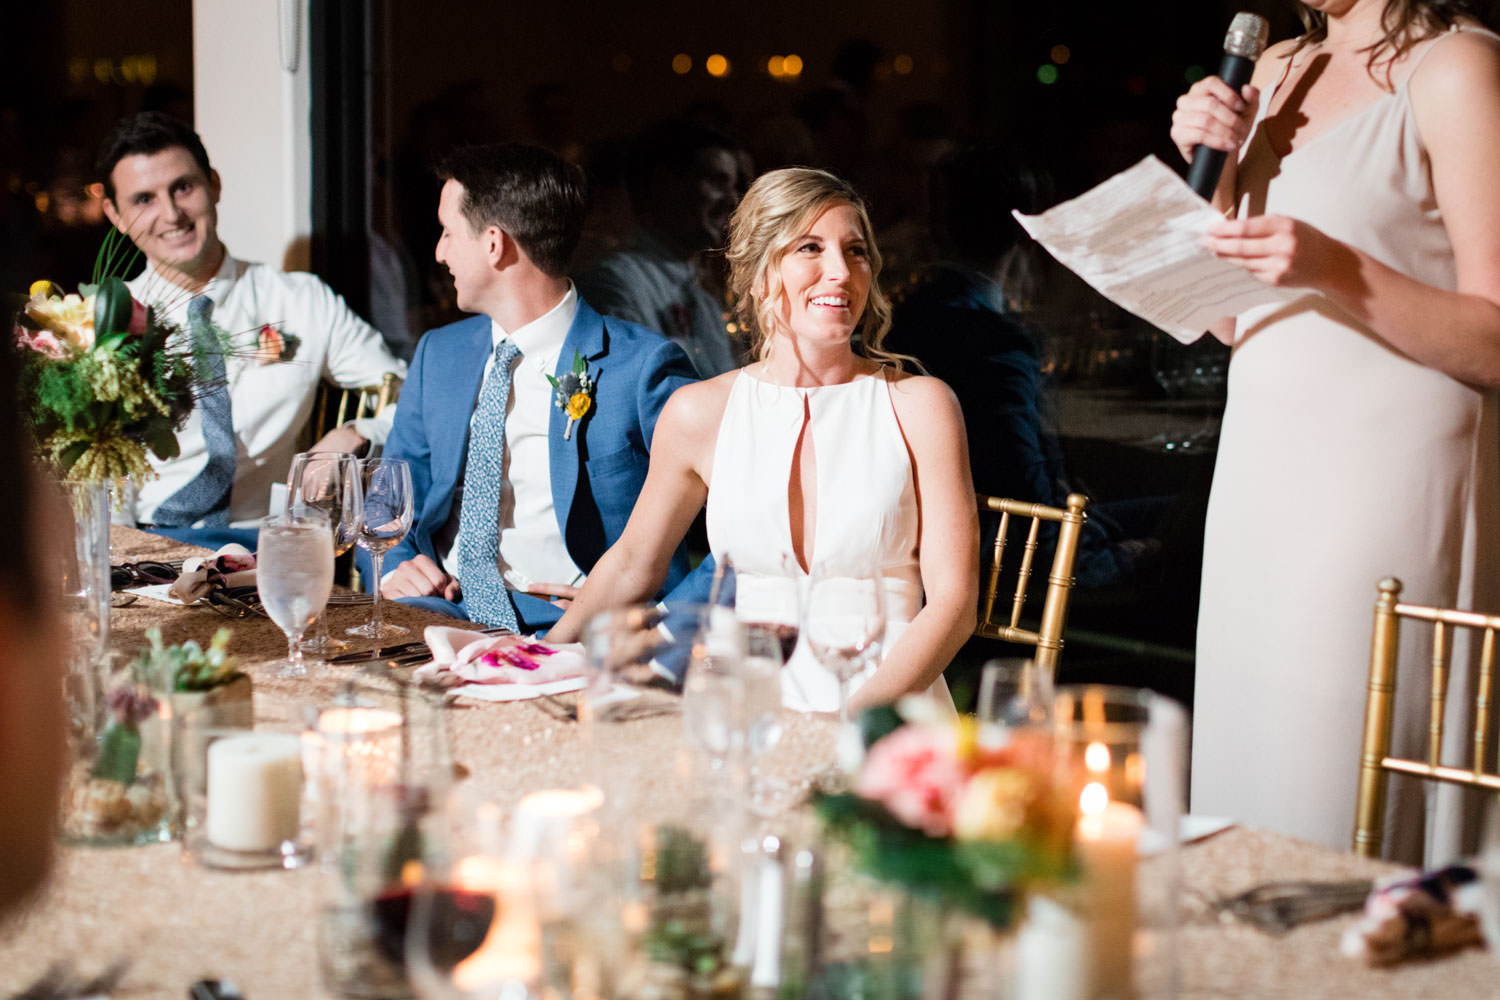 Toasts, La Quinta Resort wedding, Cavin Elizabeth Photography